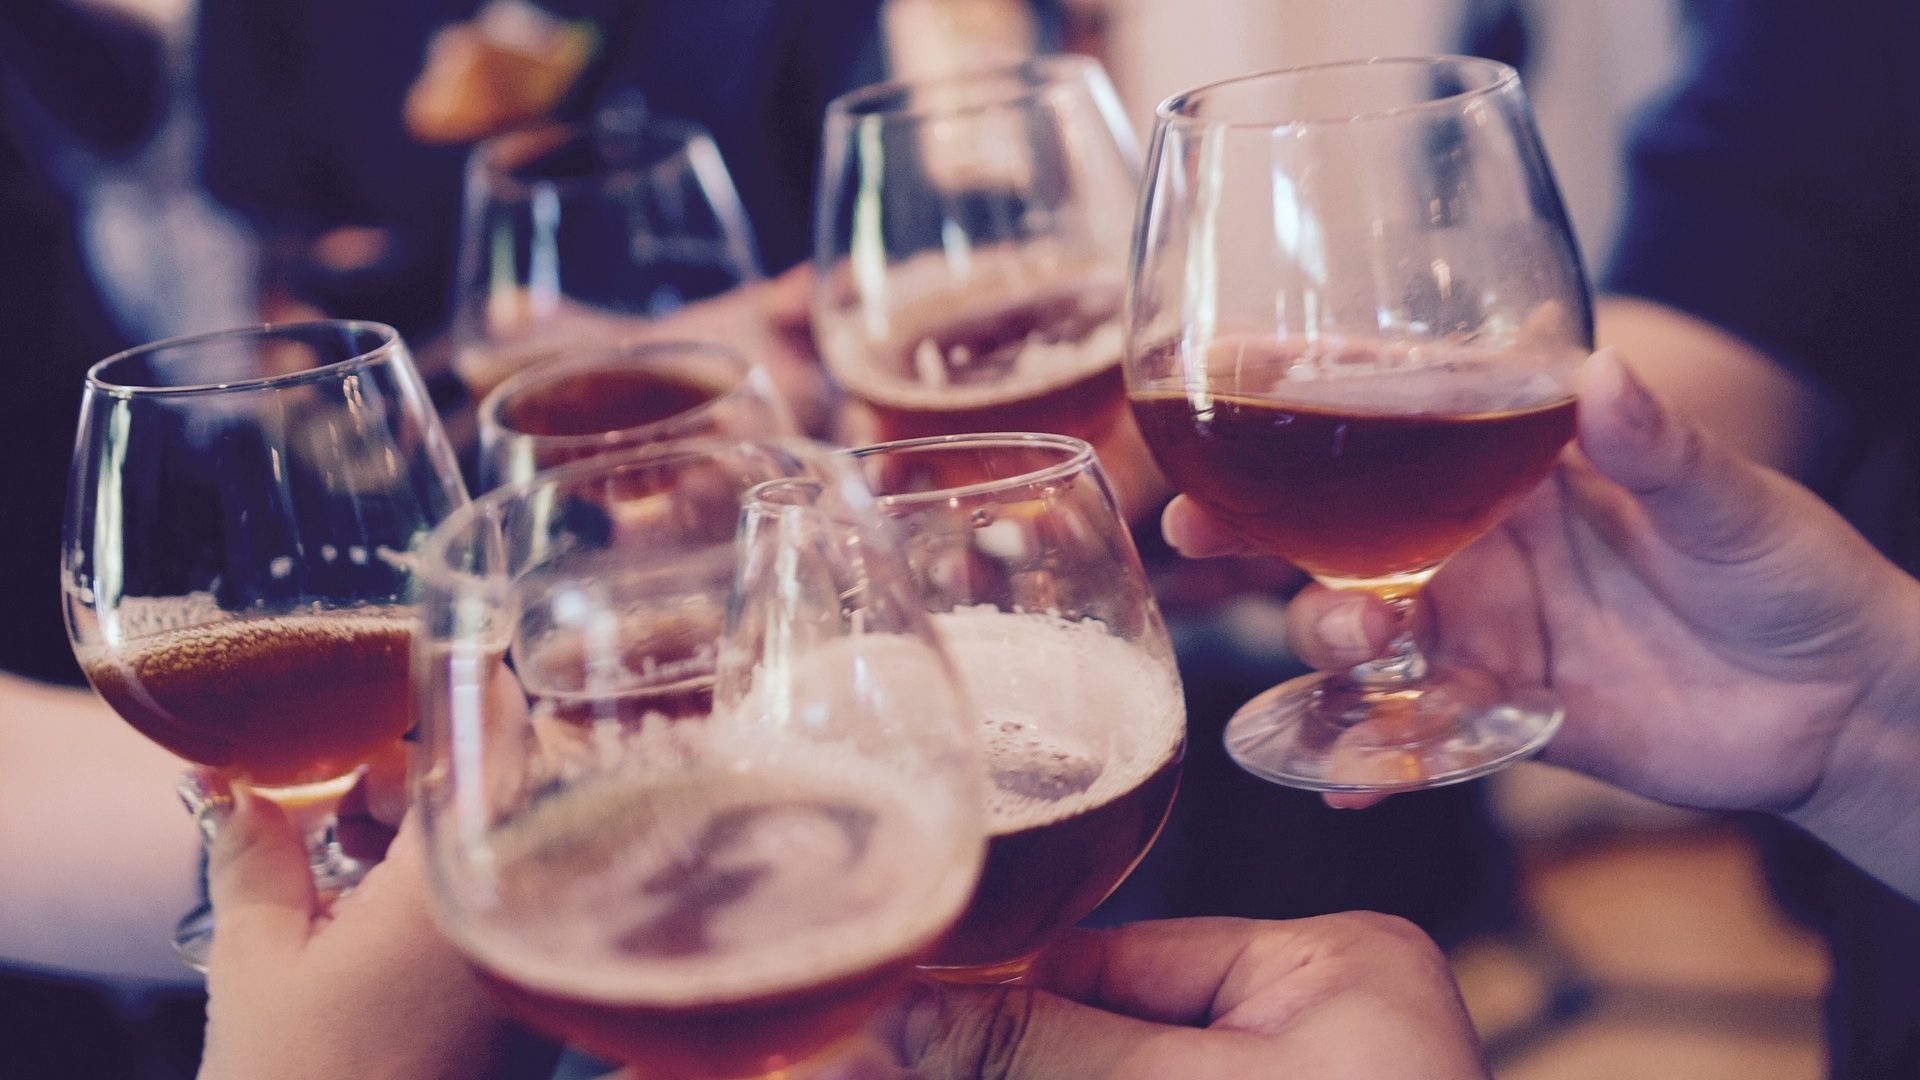 Image: Group toasting with beer glasses